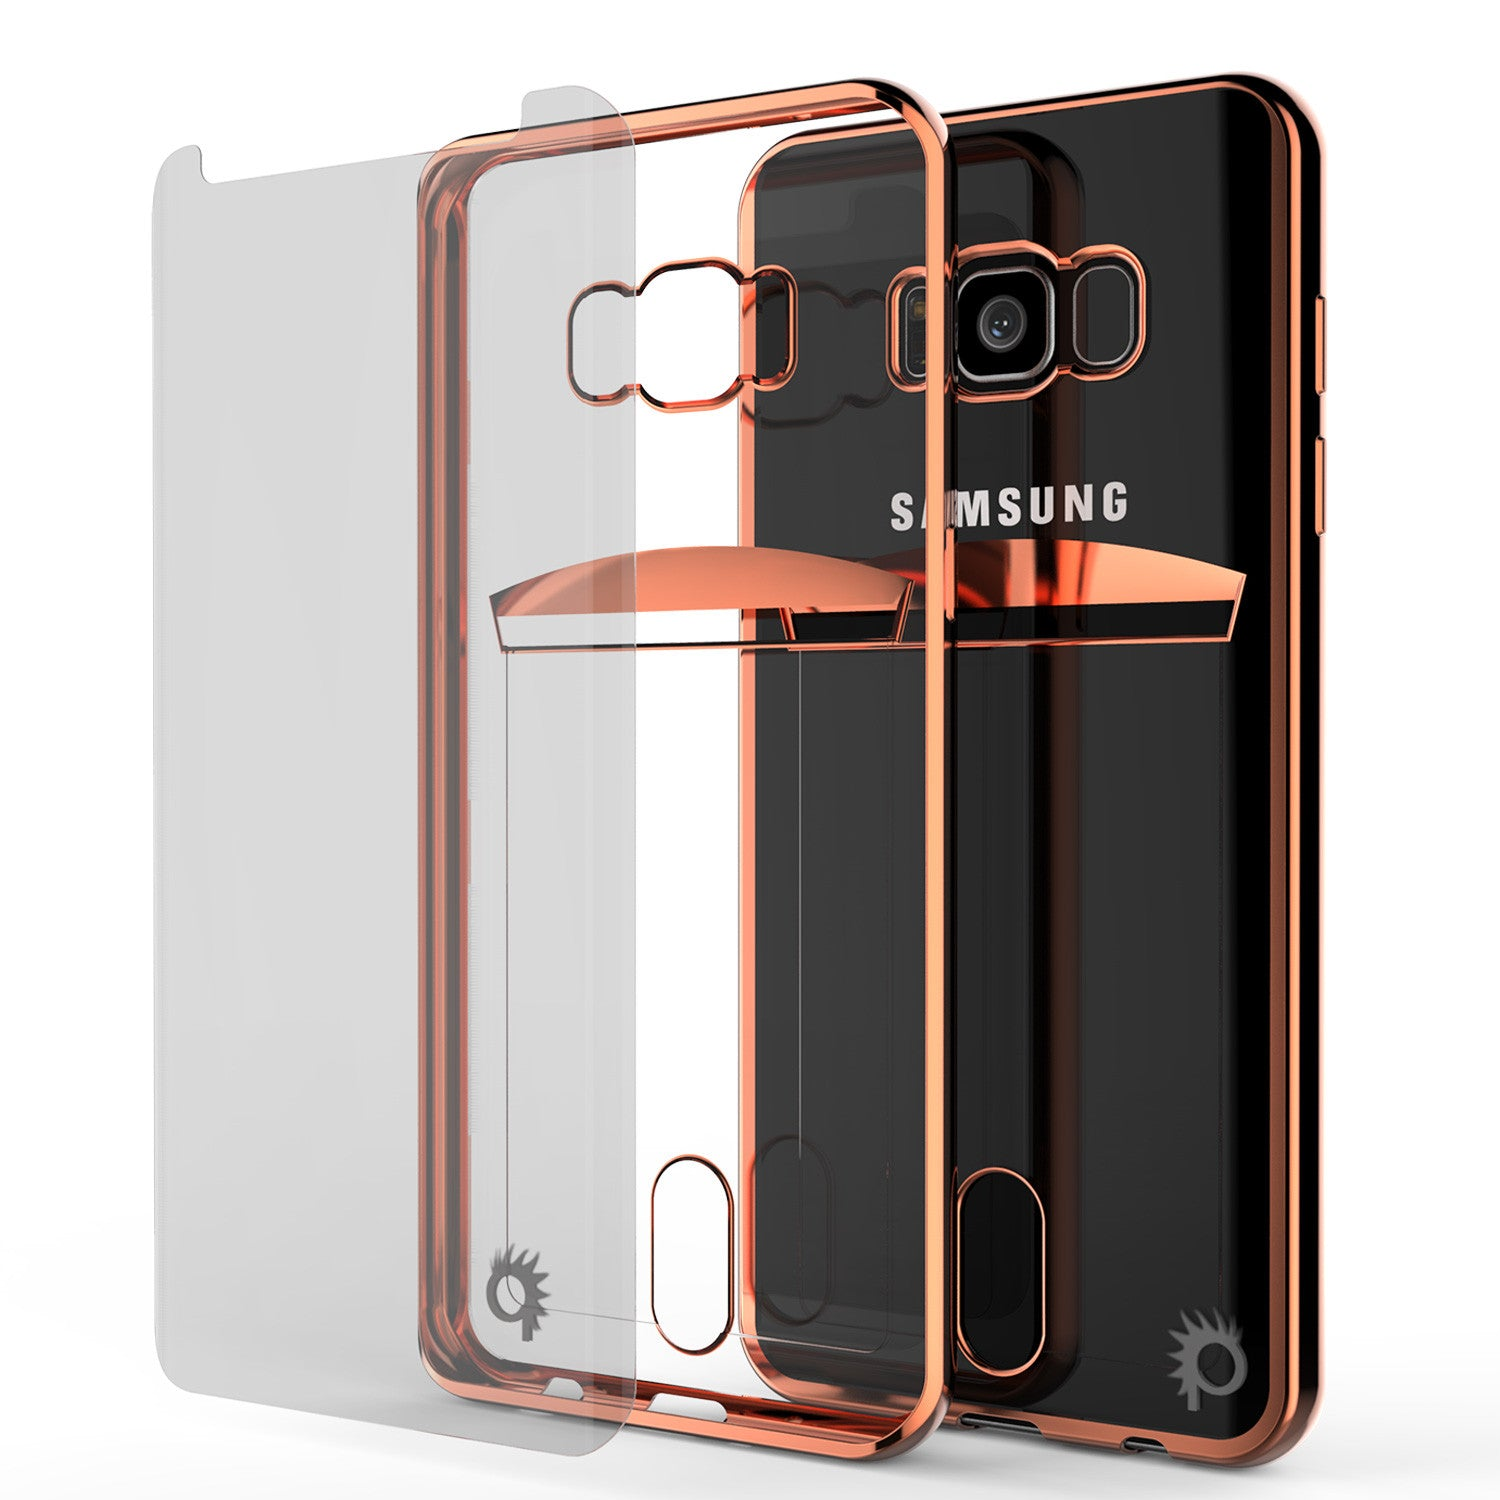 Galaxy S8 Case, PUNKCASE® LUCID Rose Gold Series | Card Slot | SHIELD Screen Protector